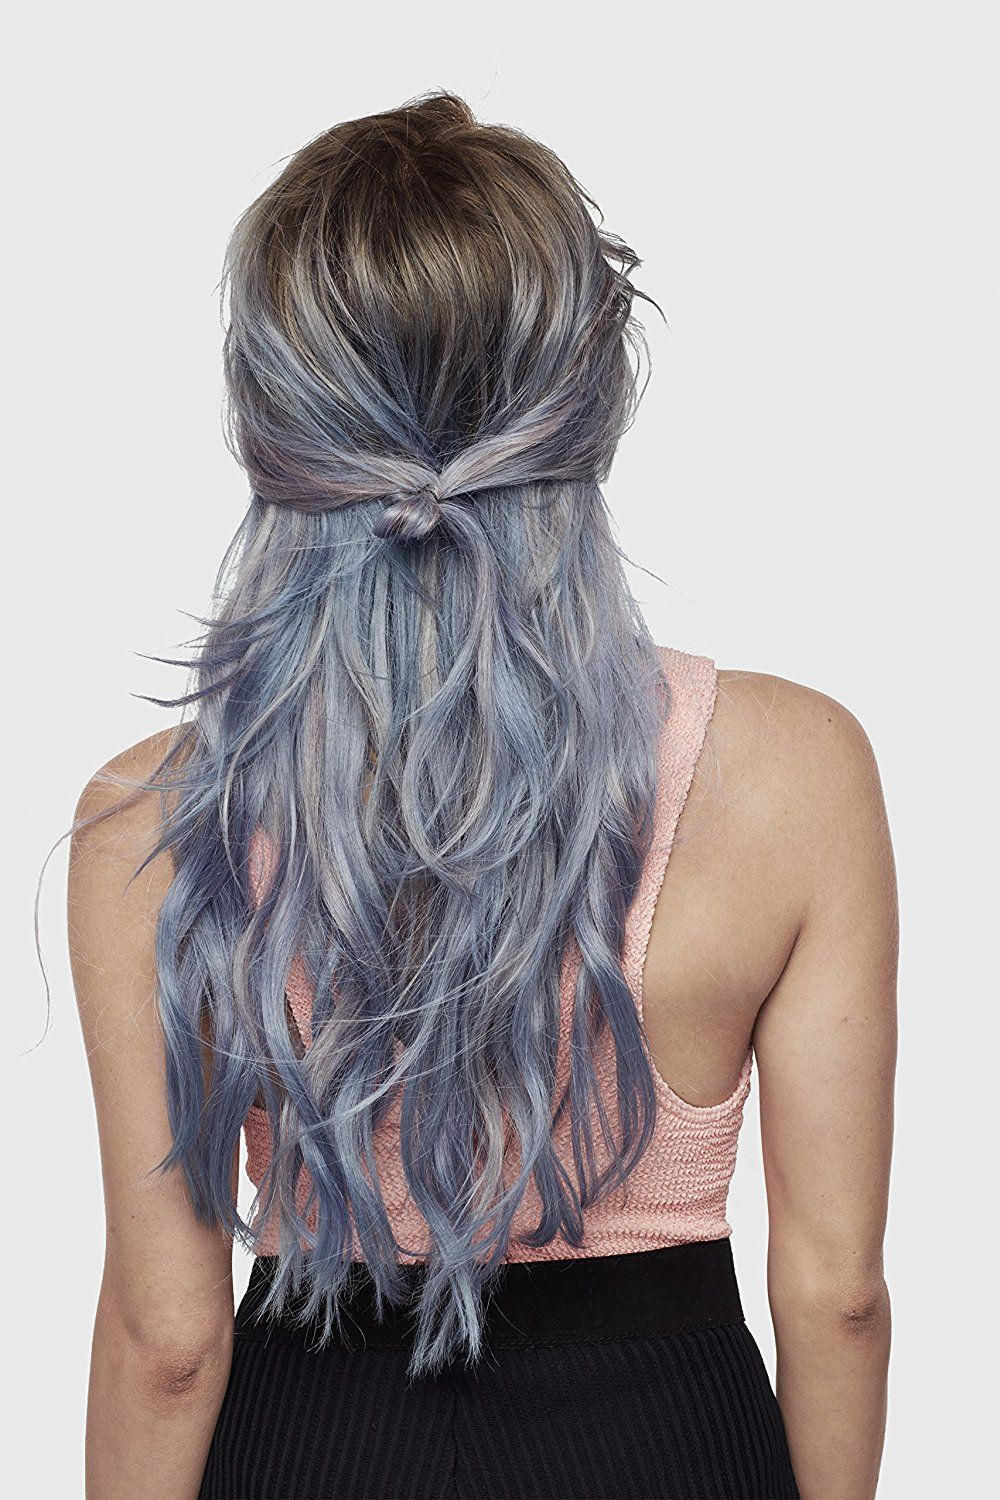 Image Result For Loreal Colorista Washable Hair Color Hair